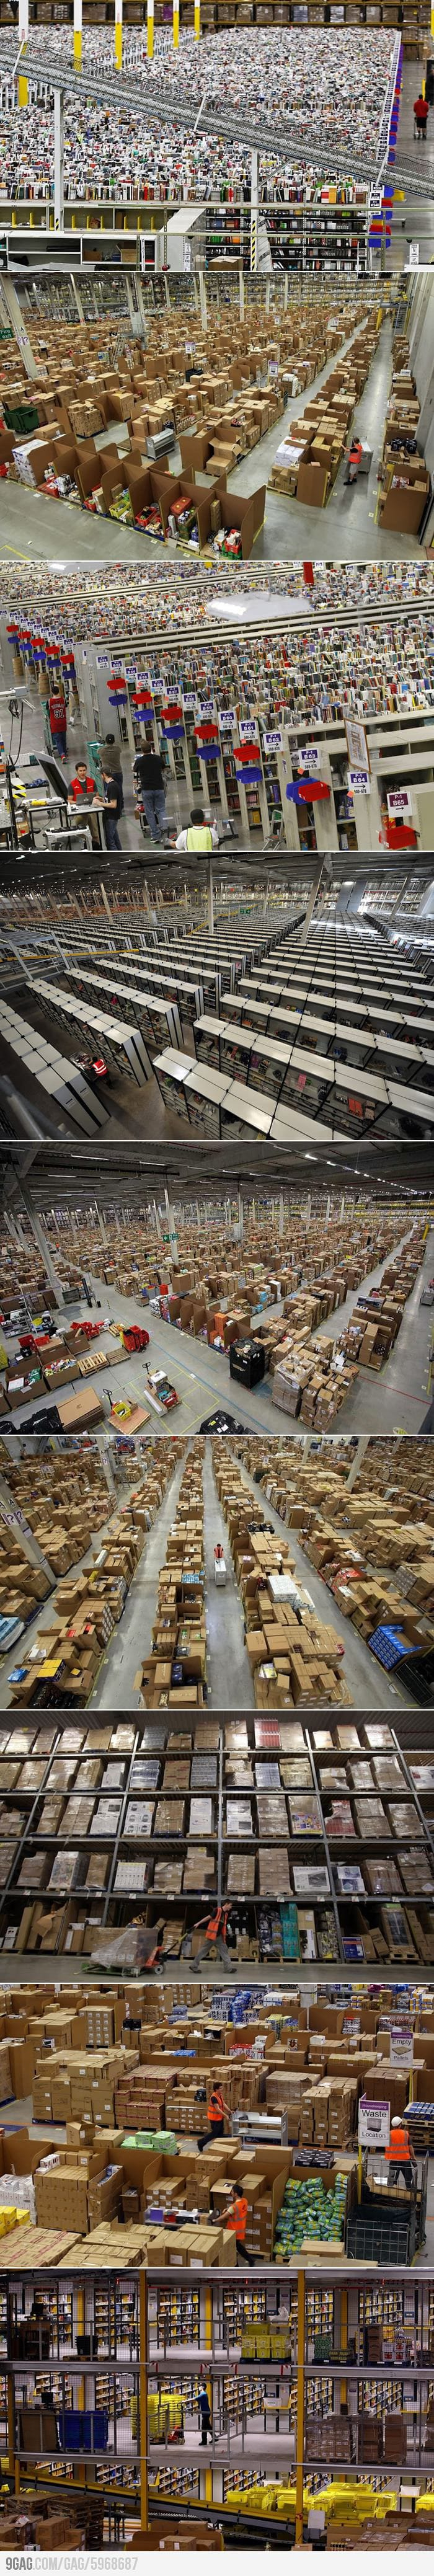 pictures-from-inside-amazon-warehouse